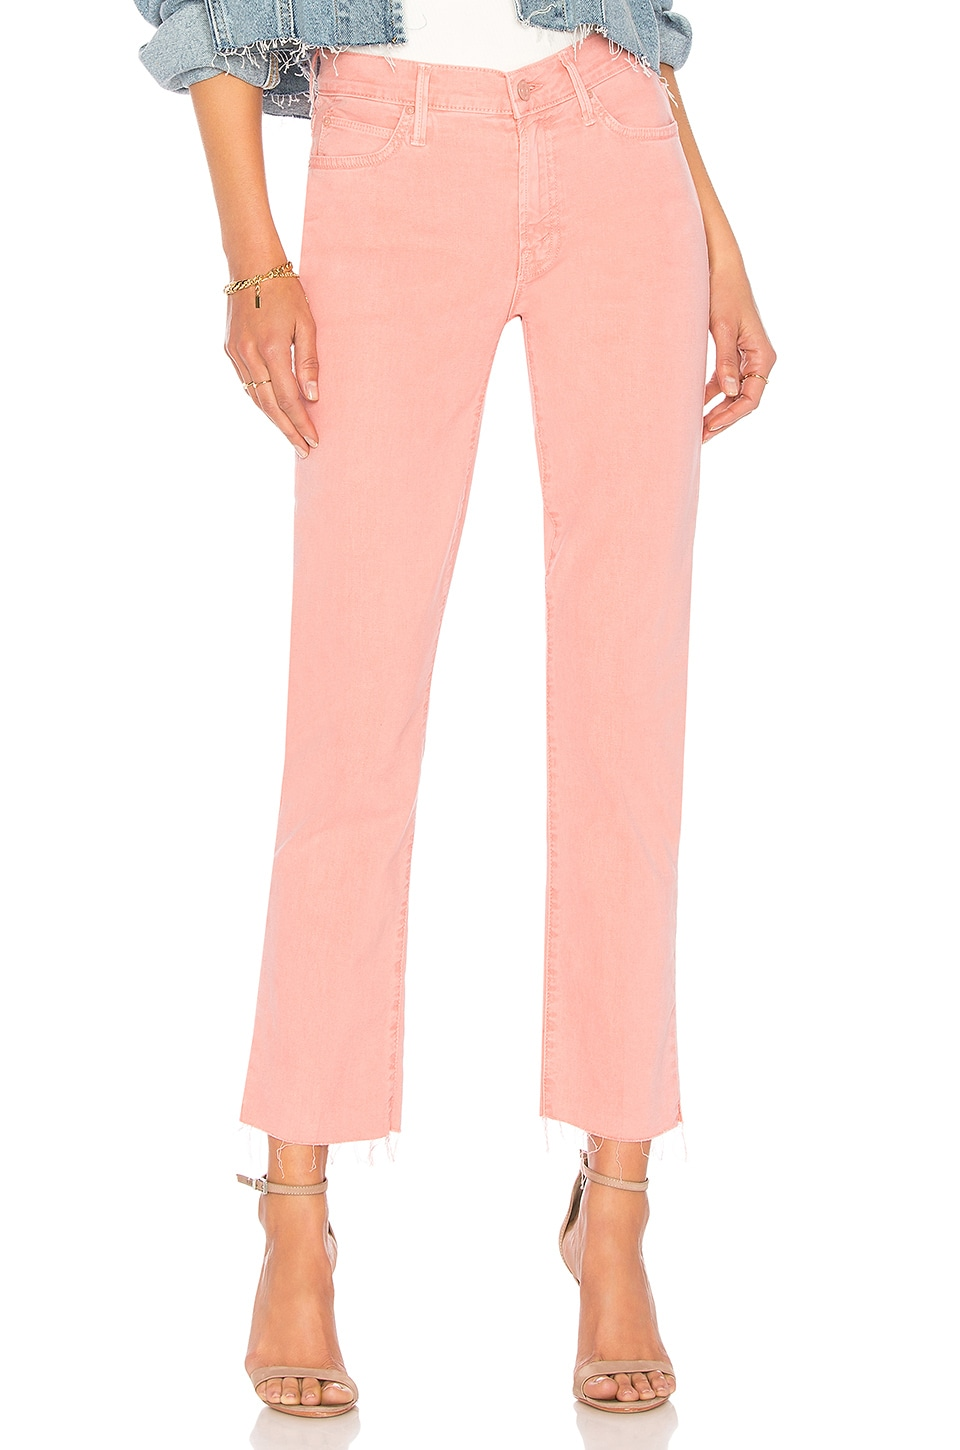 MOTHER THE RASCAL ANKLE SNIPPET PANT